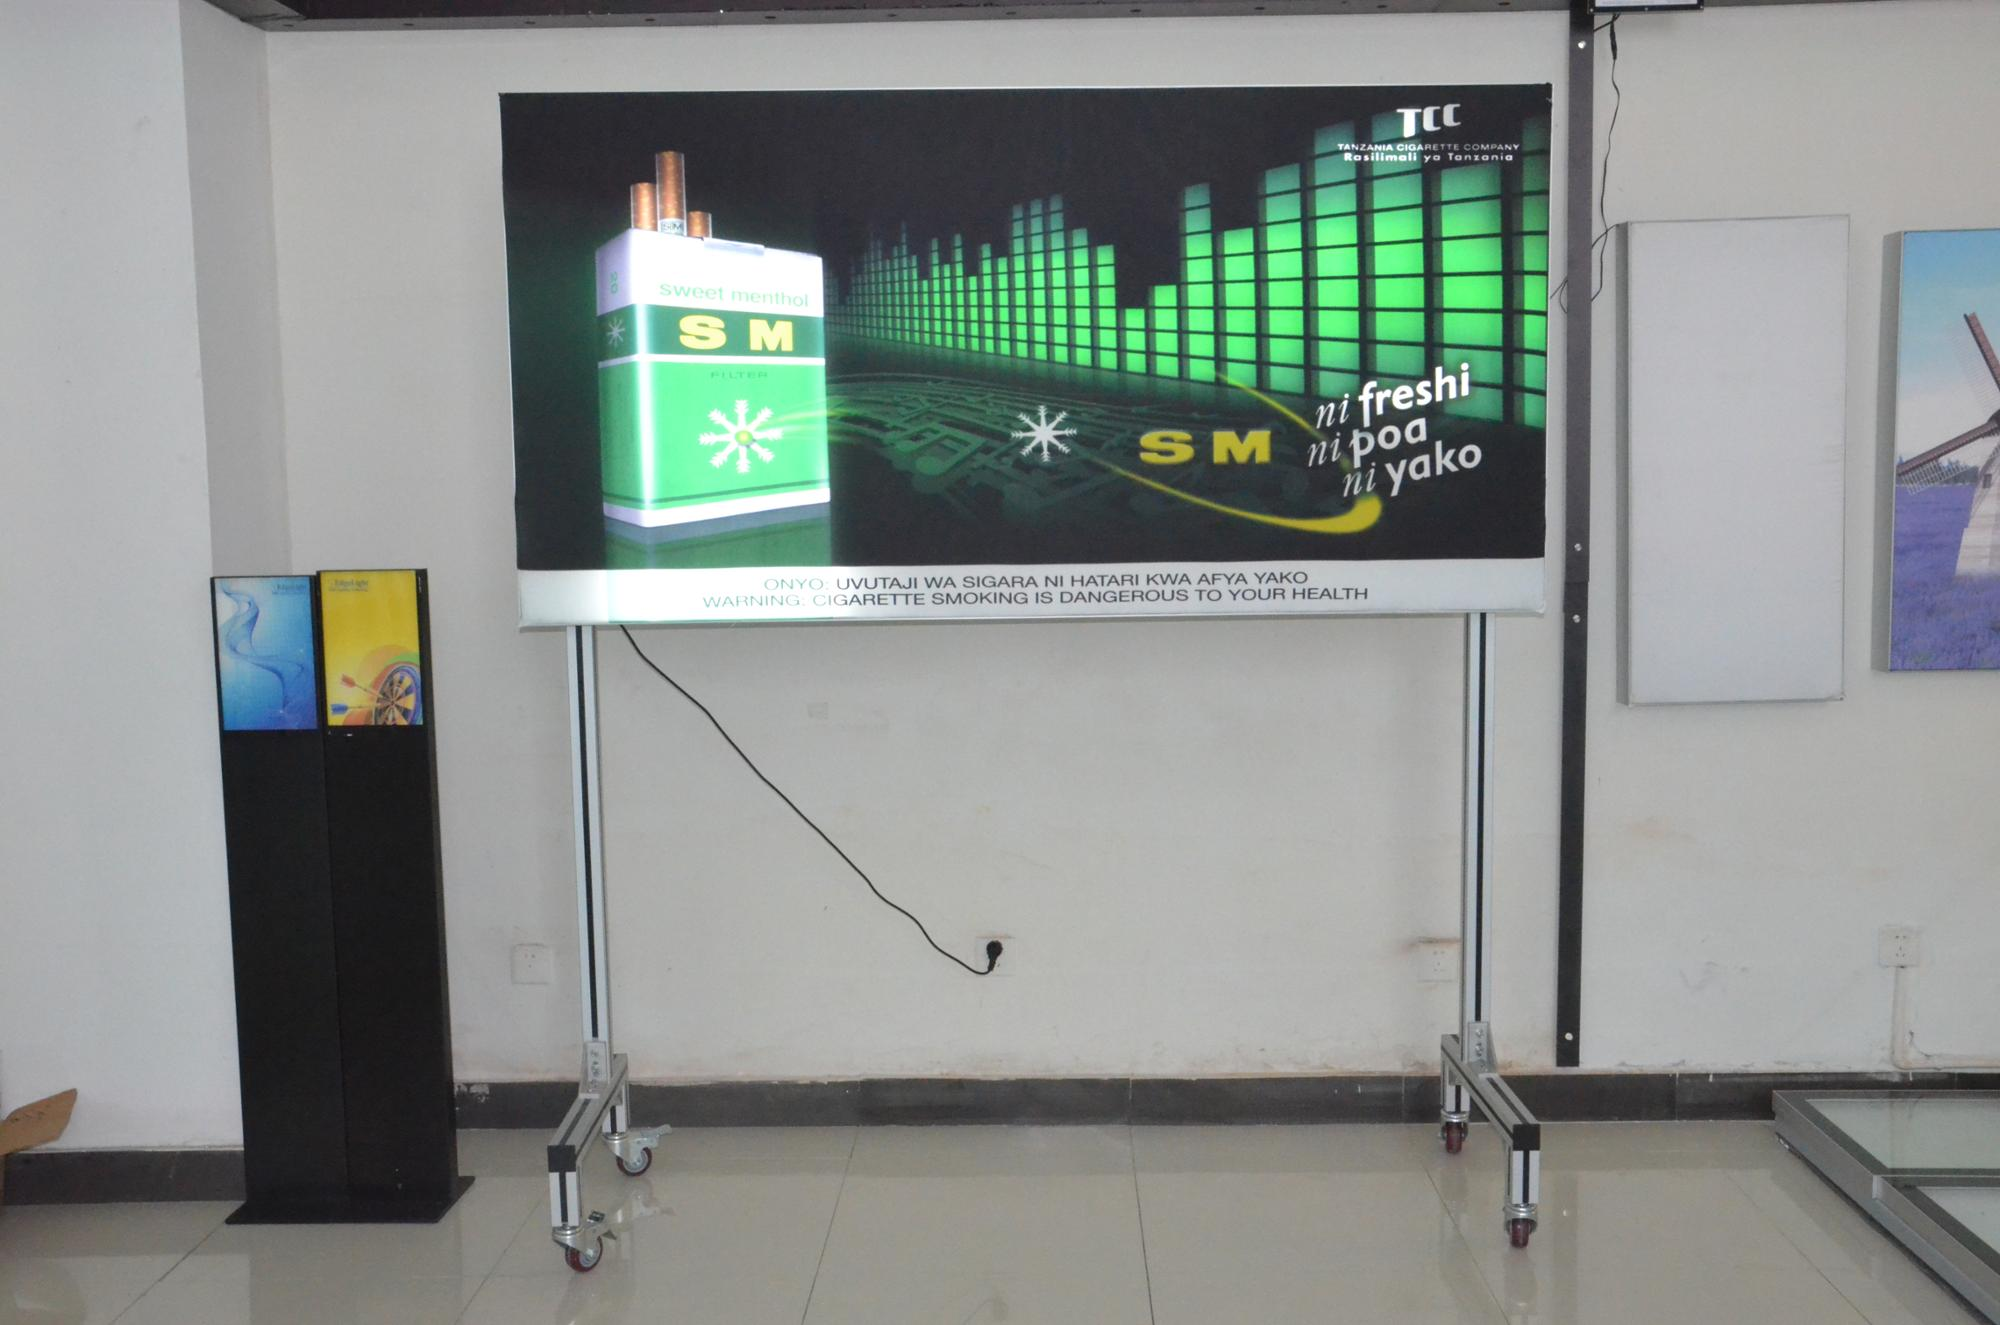 2835 smd LED SMD led pixel motion screen advertising display light module full color RGB P10 LED module